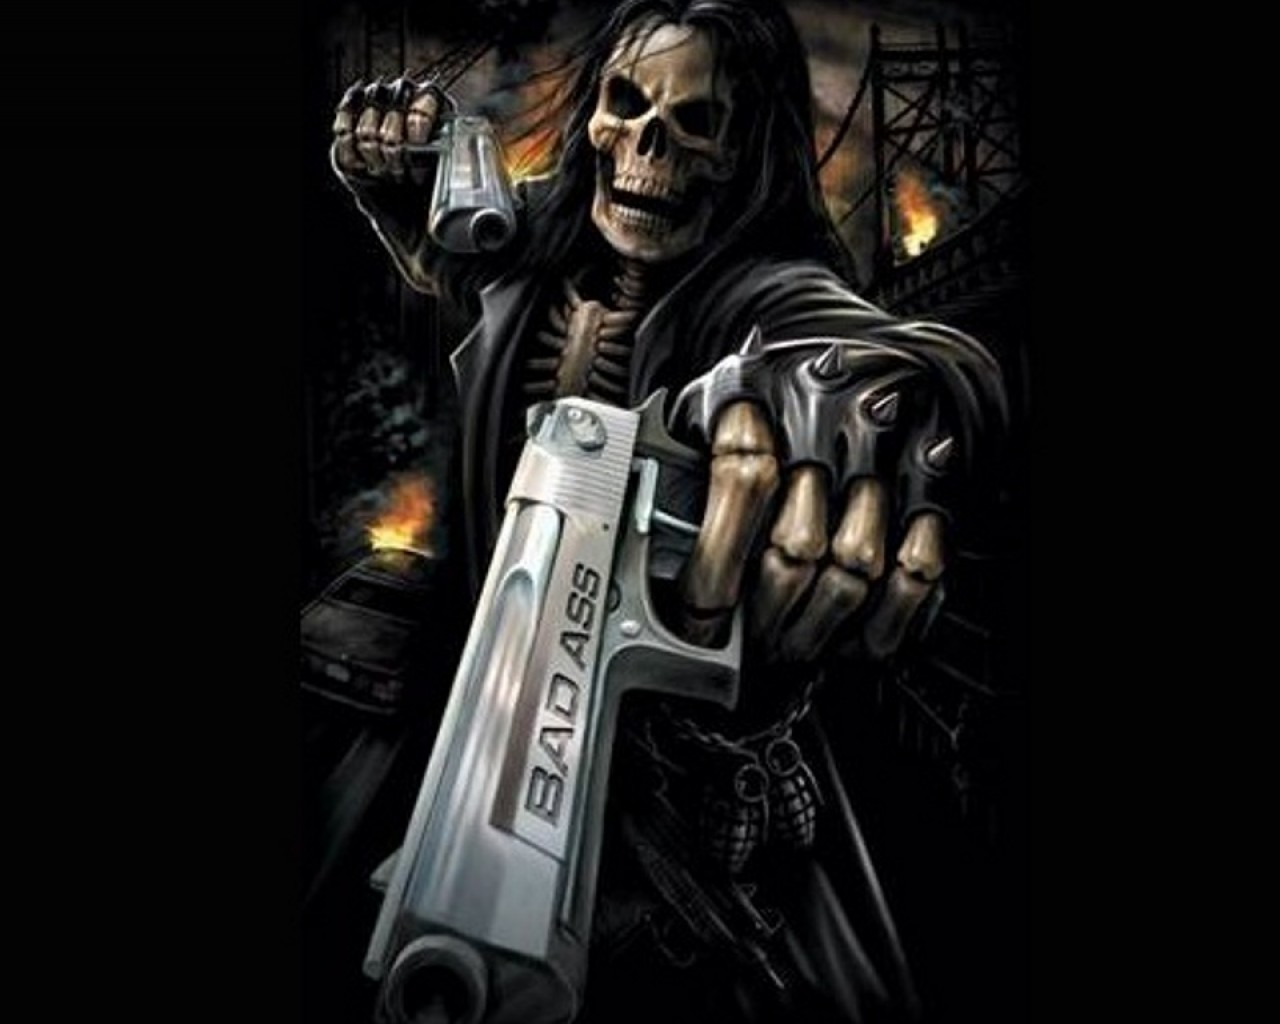 Wallpaper Grim Reaper Hd Posted By Ryan Johnson